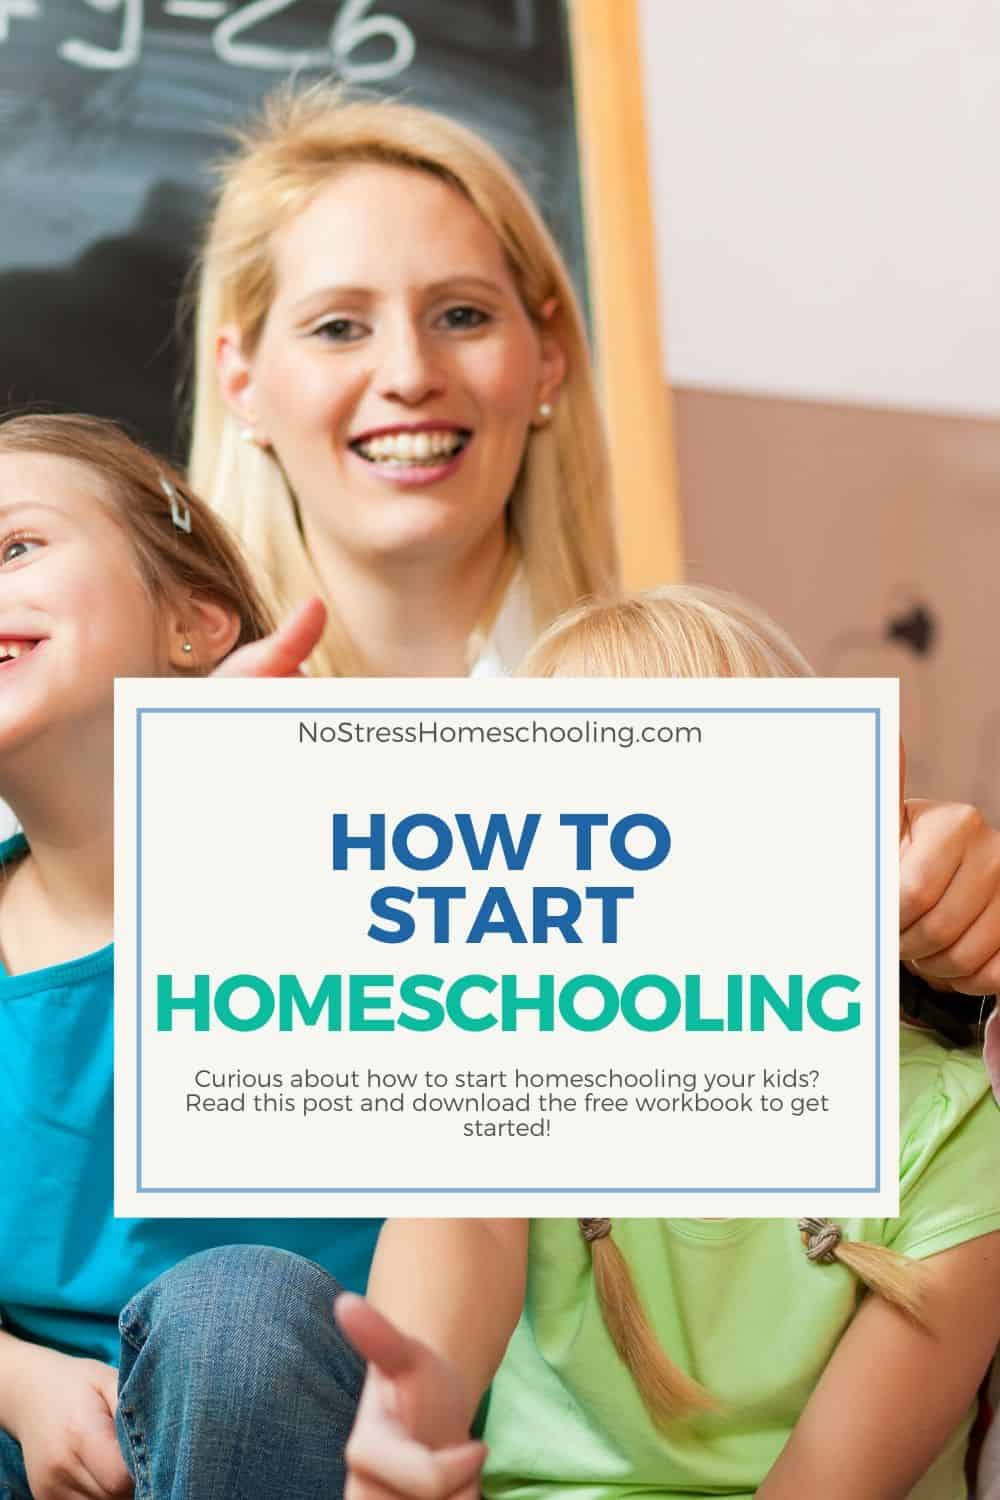 PIC SHOWING HOW TO START HOMESCHOOLING YOUR KIDS